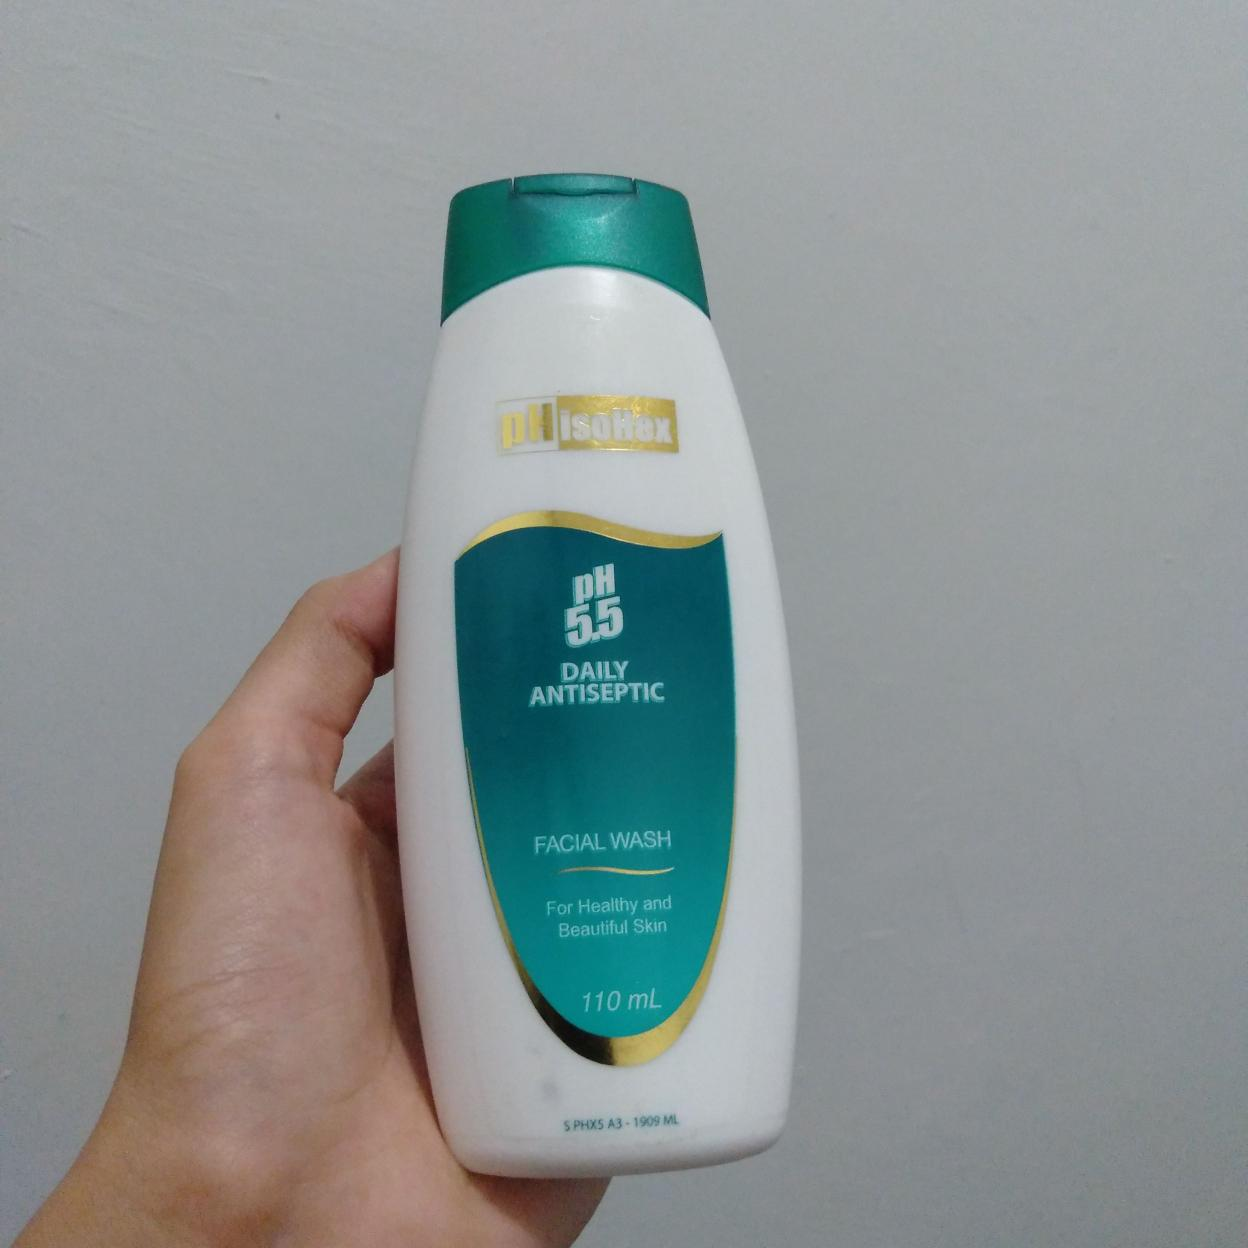 Phisohex Facial Wash Daily Antiseptic Review Female Daily